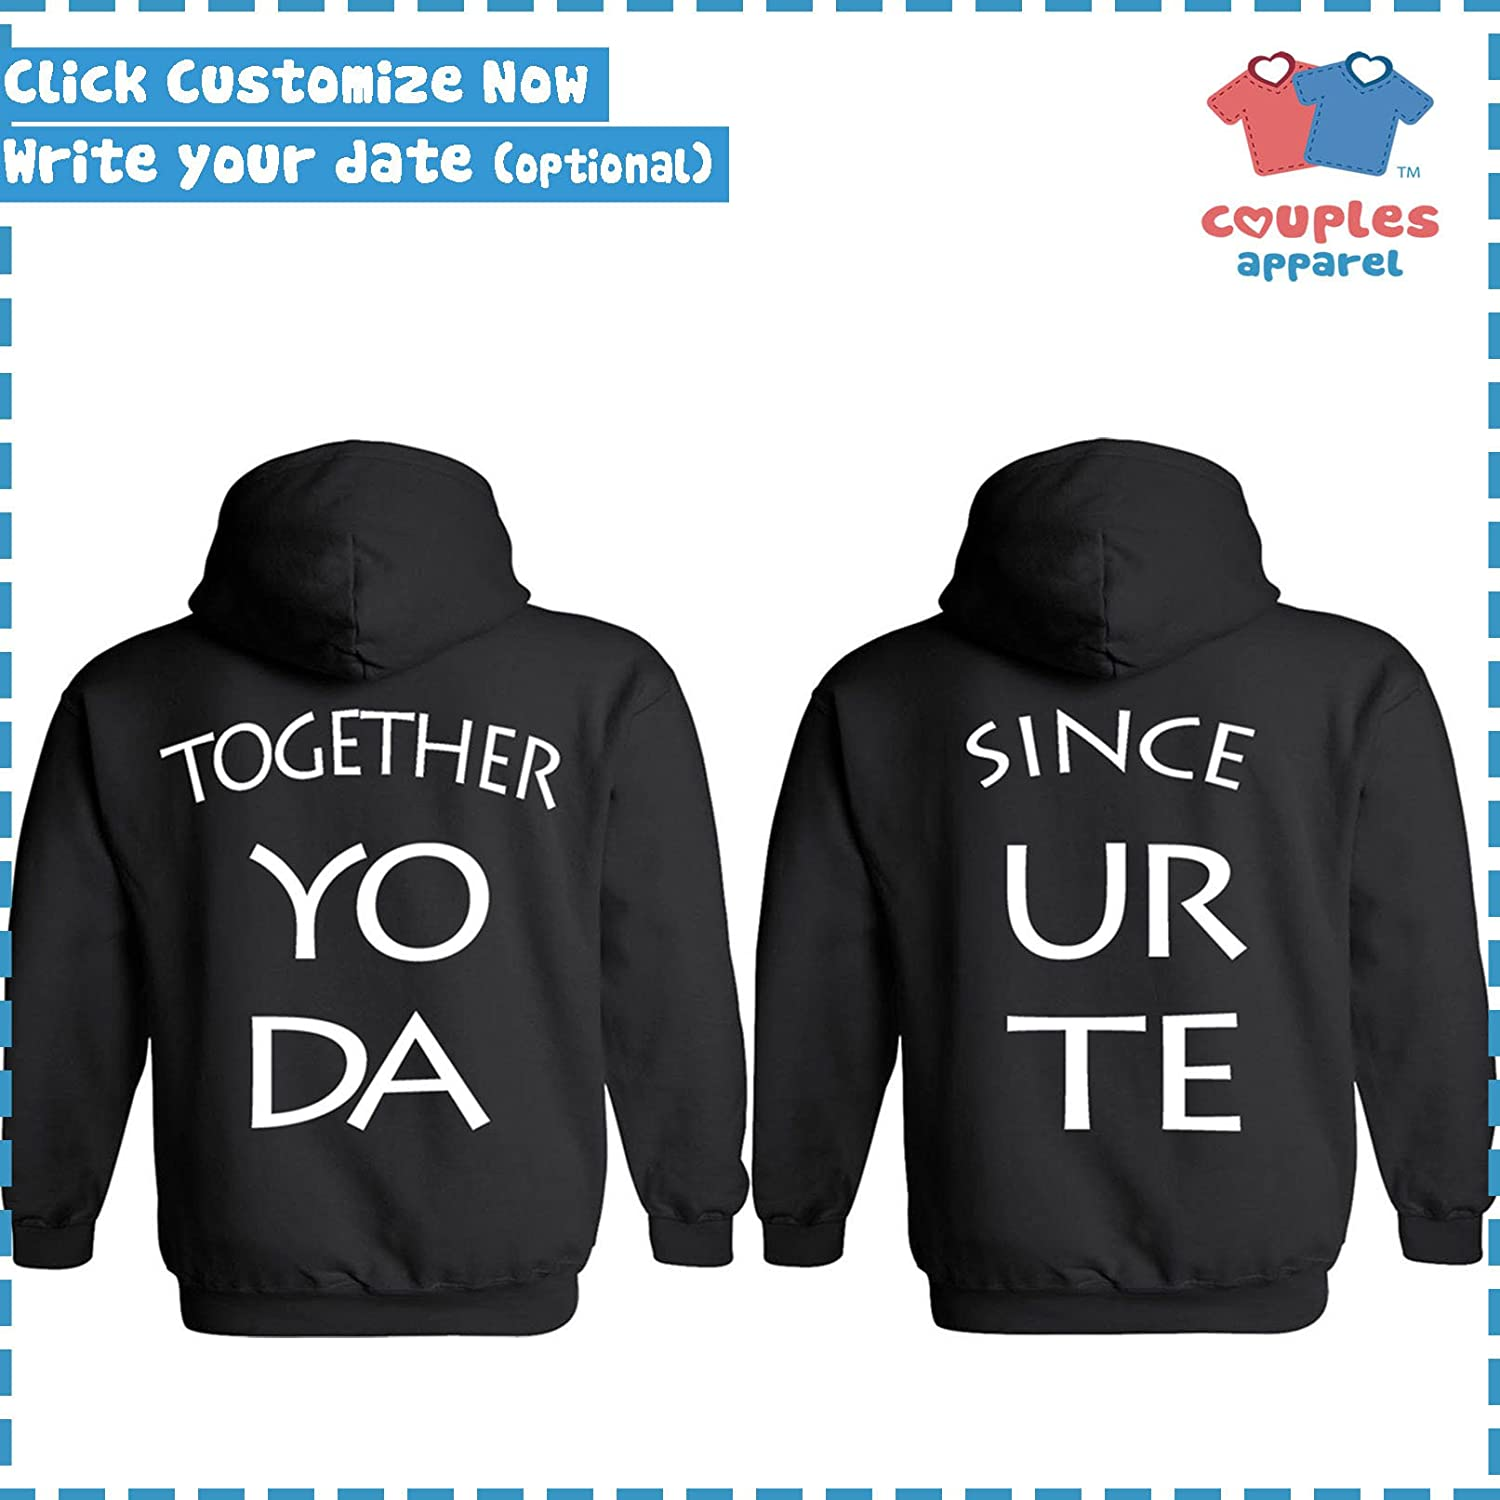 dfb3df1972 Amazon.com: King & Queen [Personalized] Together Since [Your Date] -  Matching Couple Hoodies - His and Her Sweaters: Clothing